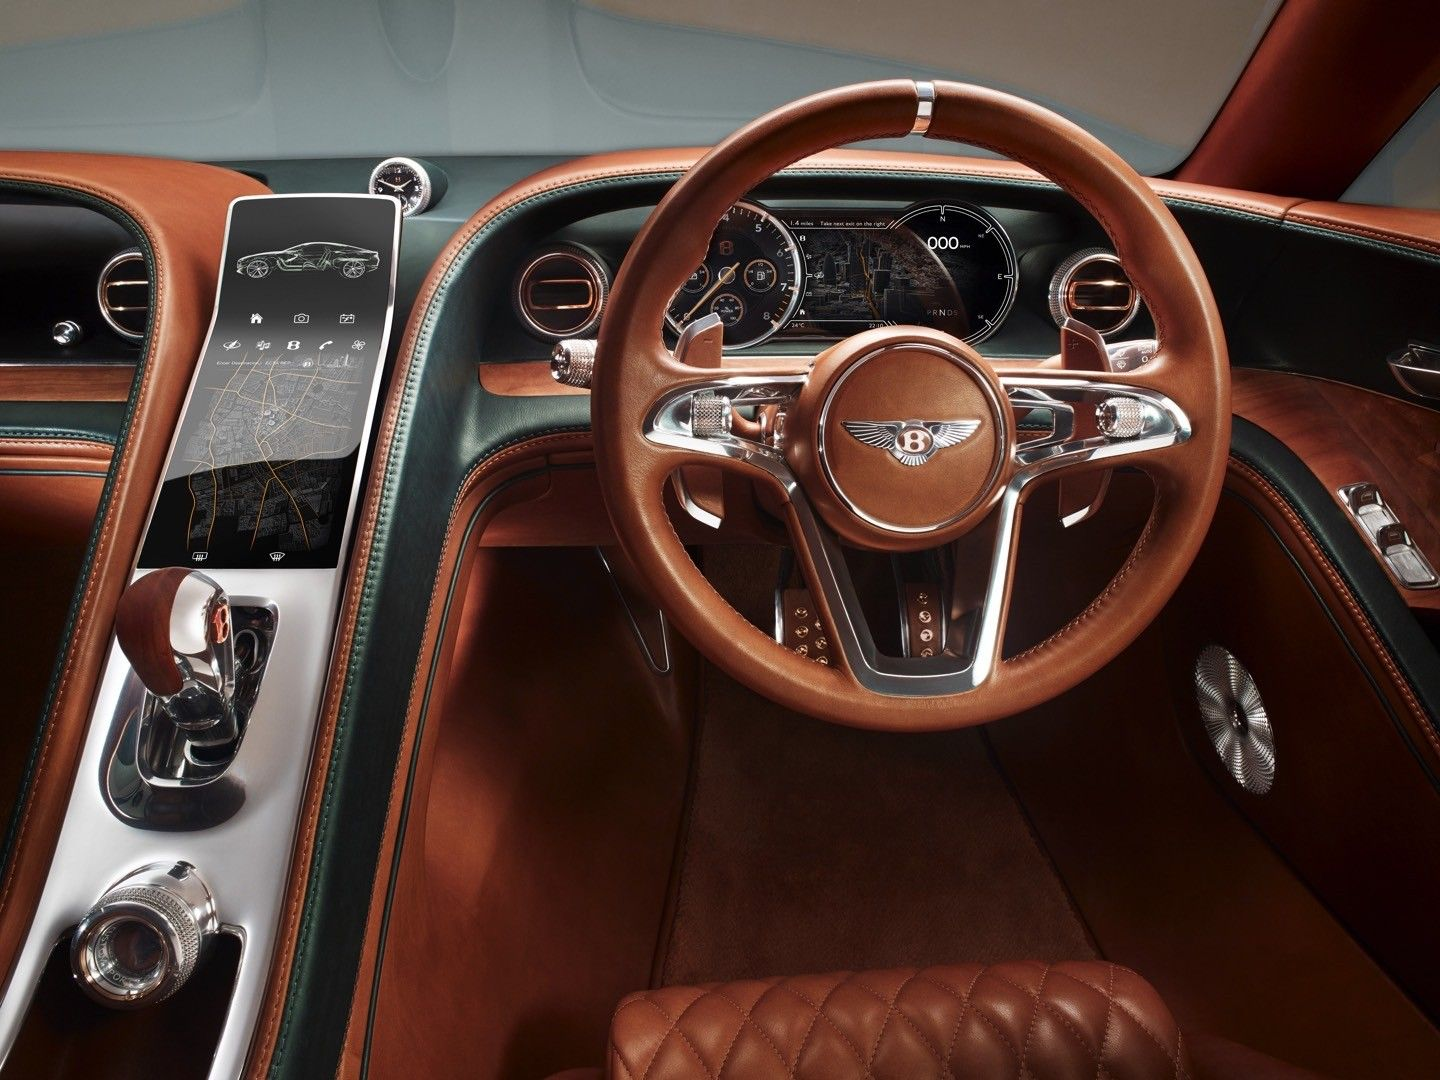 Bentley Two Seat Sport Car EXP 10 Speed 6 Concept. Inside The  Performance Oriented Interior Are Luxury Touches, Like Straight Grain  Cherry Wood Door Inserts ...